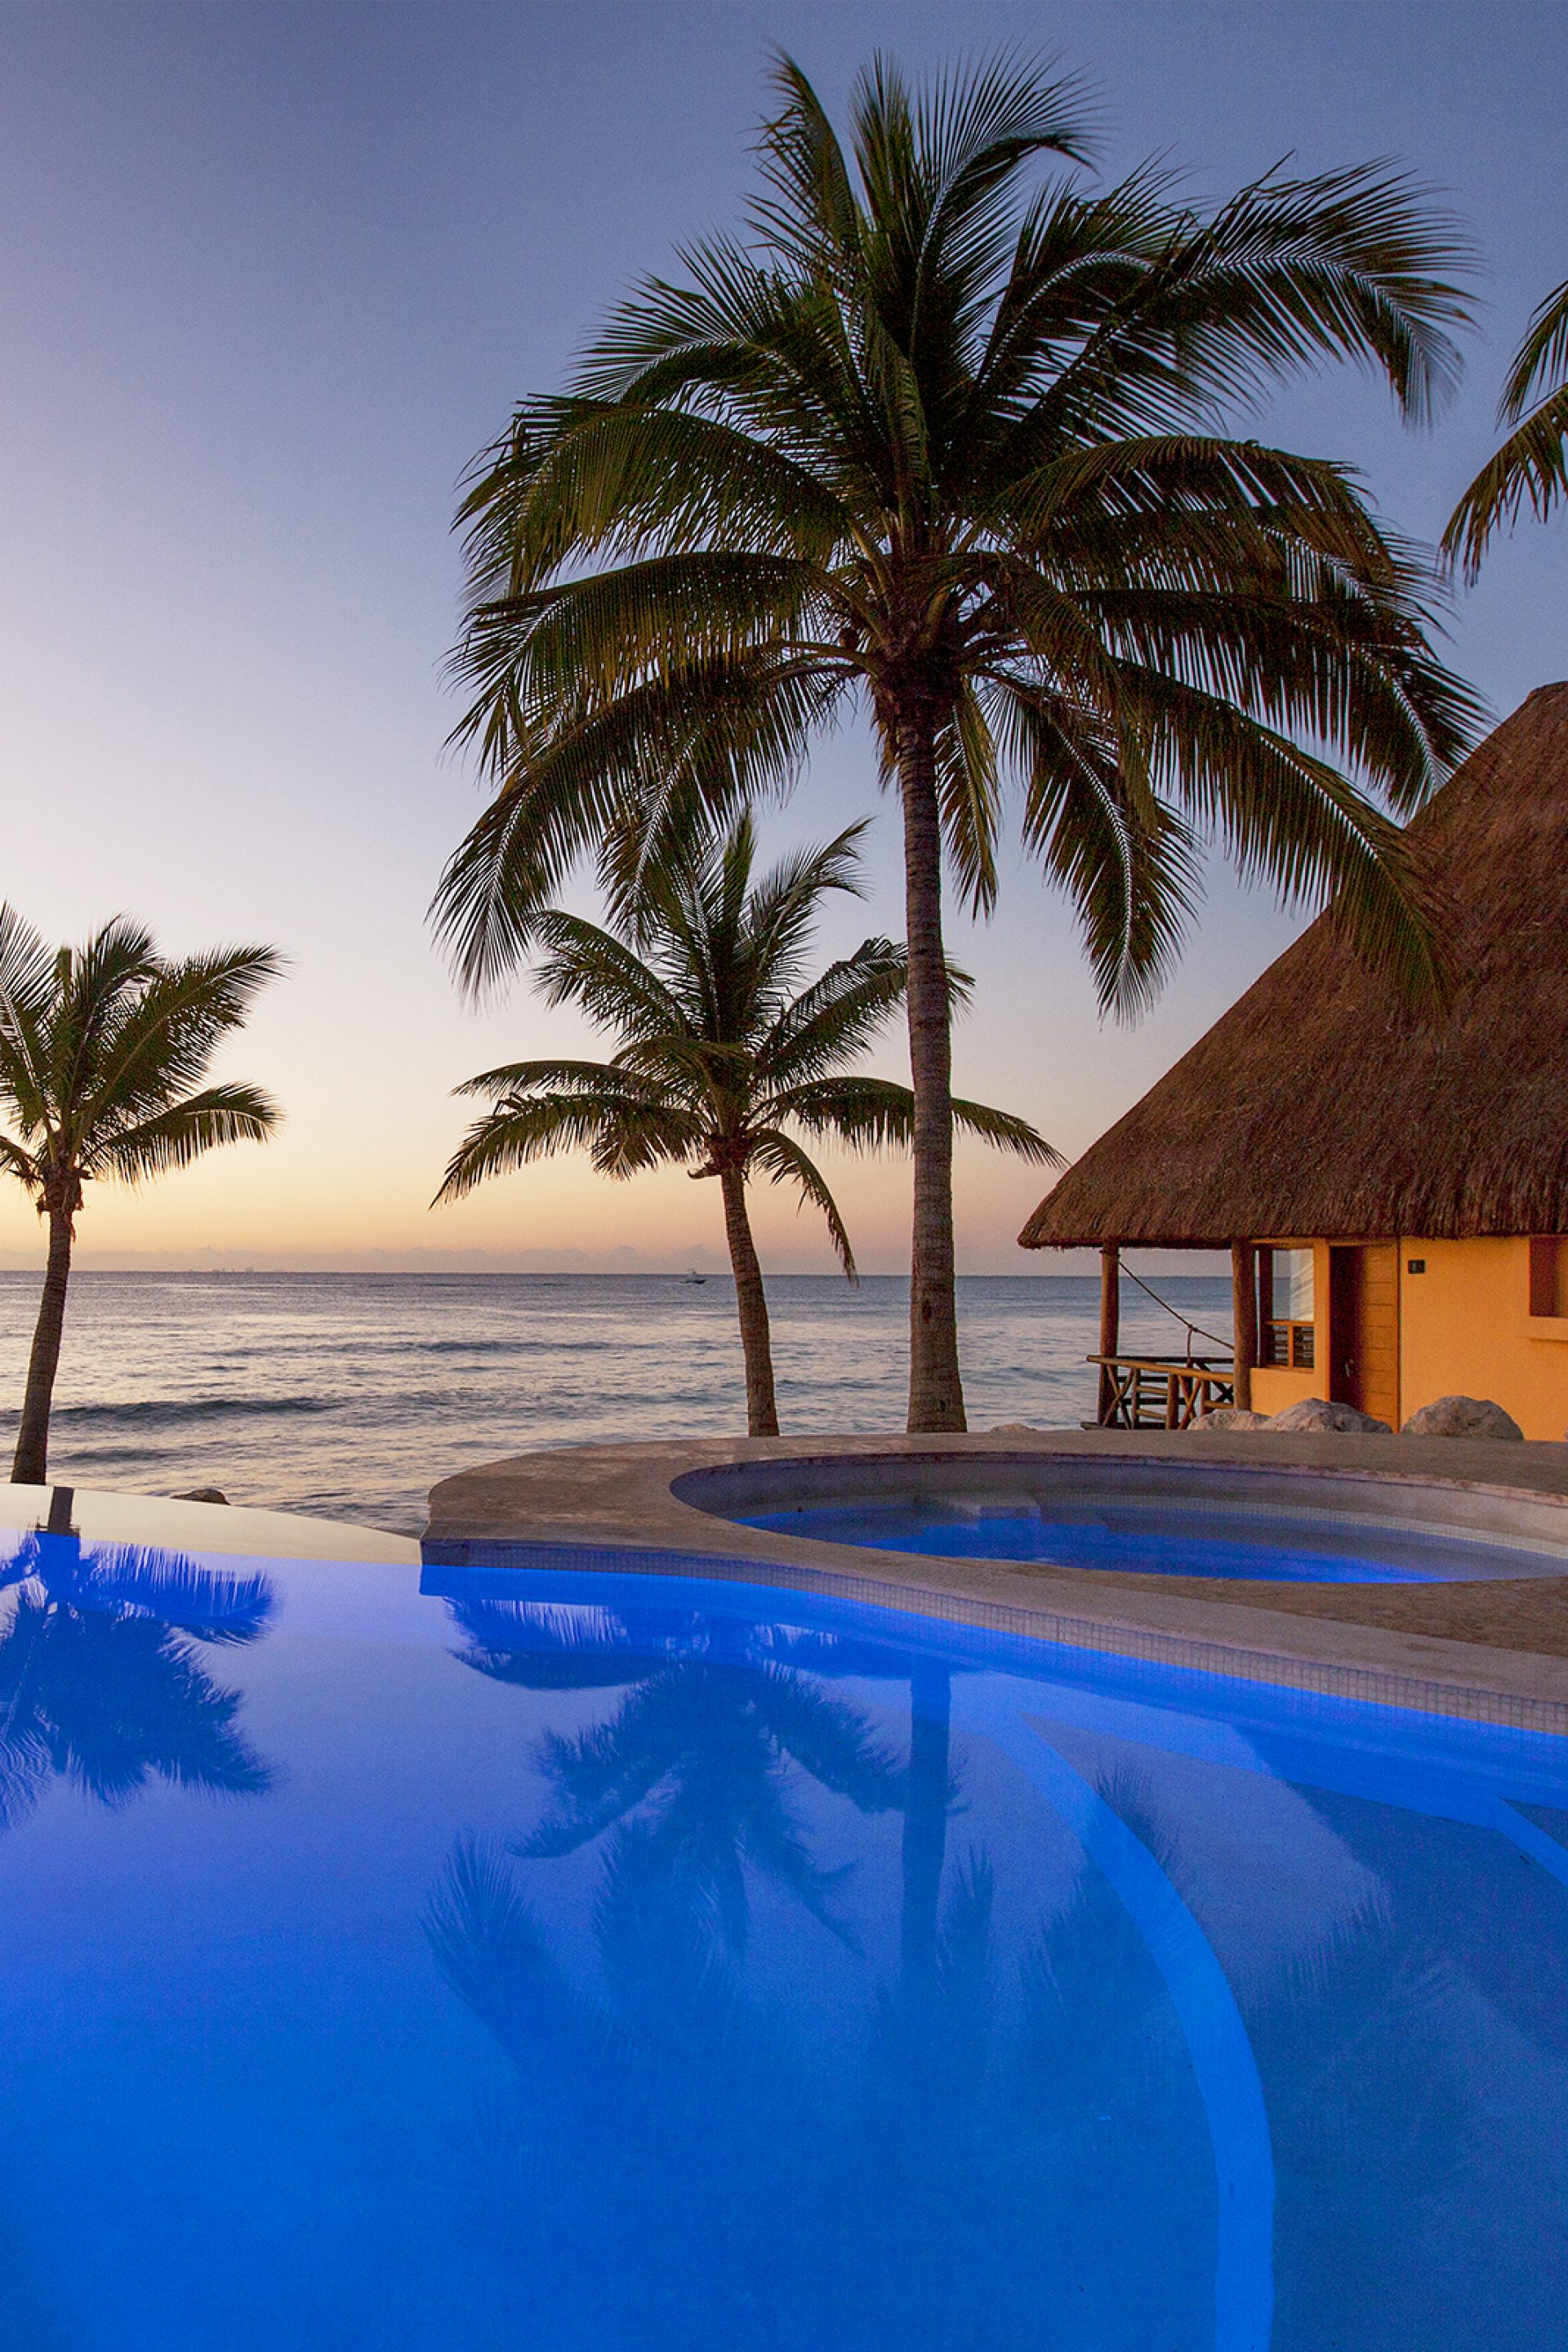 Resort-style infinity pool overlooking the Caribbean at Mahekal Beach Resort